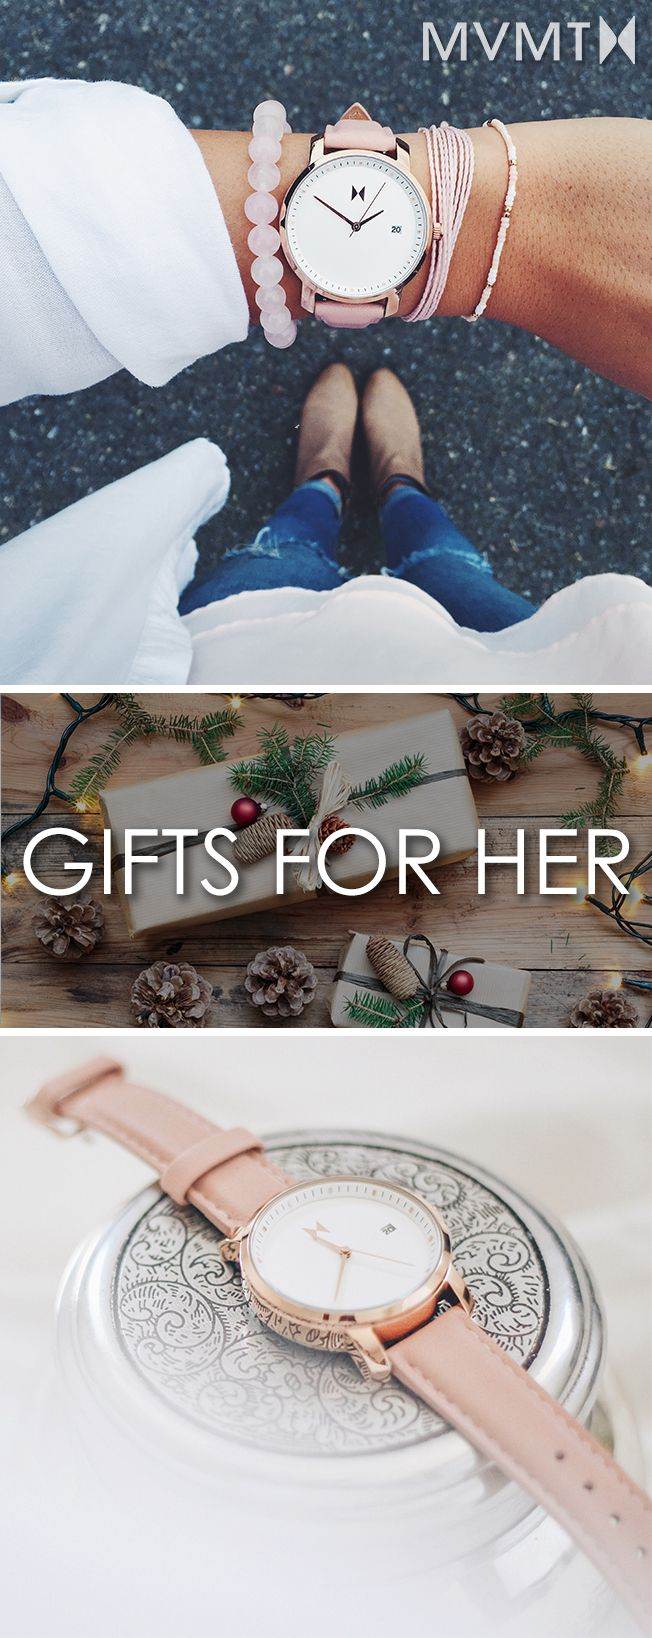 118 best Gifts for Her images on Pinterest   Gifts, Holiday gifts ...